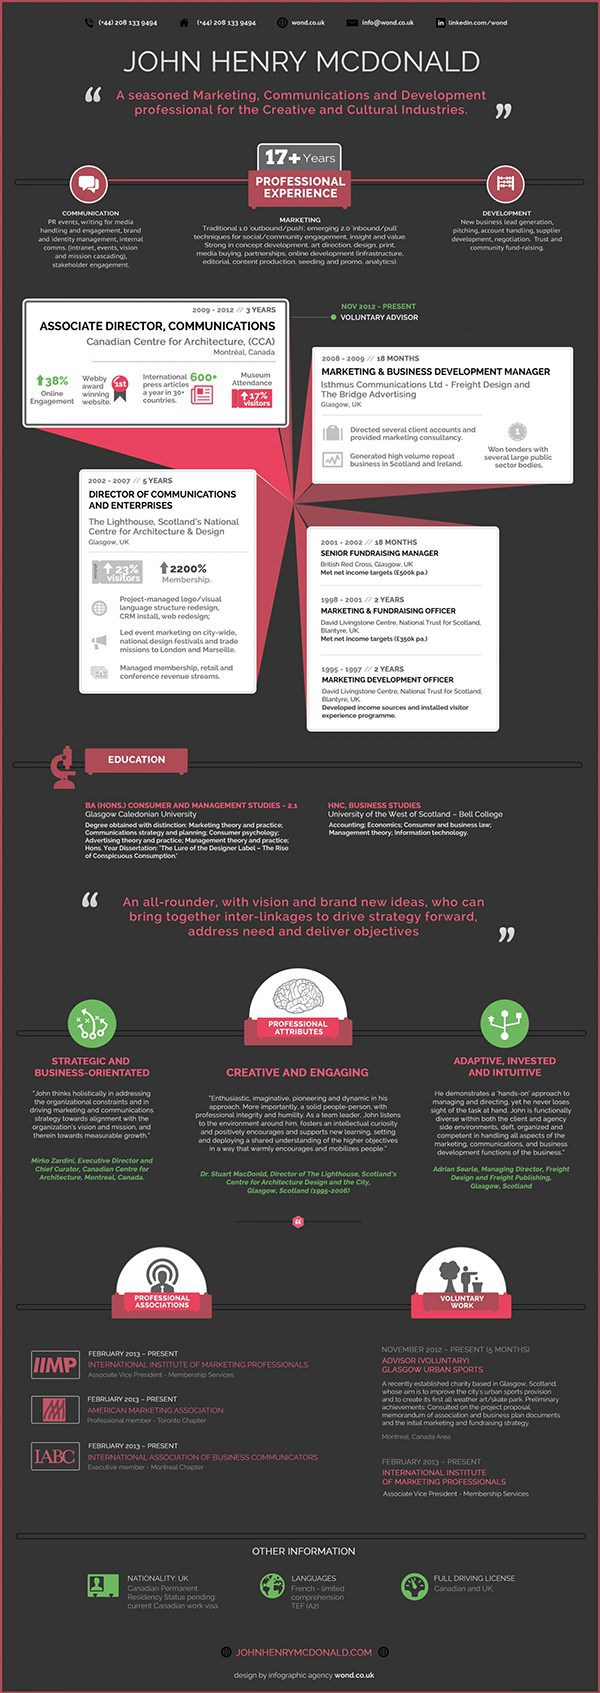 Free Infographic Resume Template